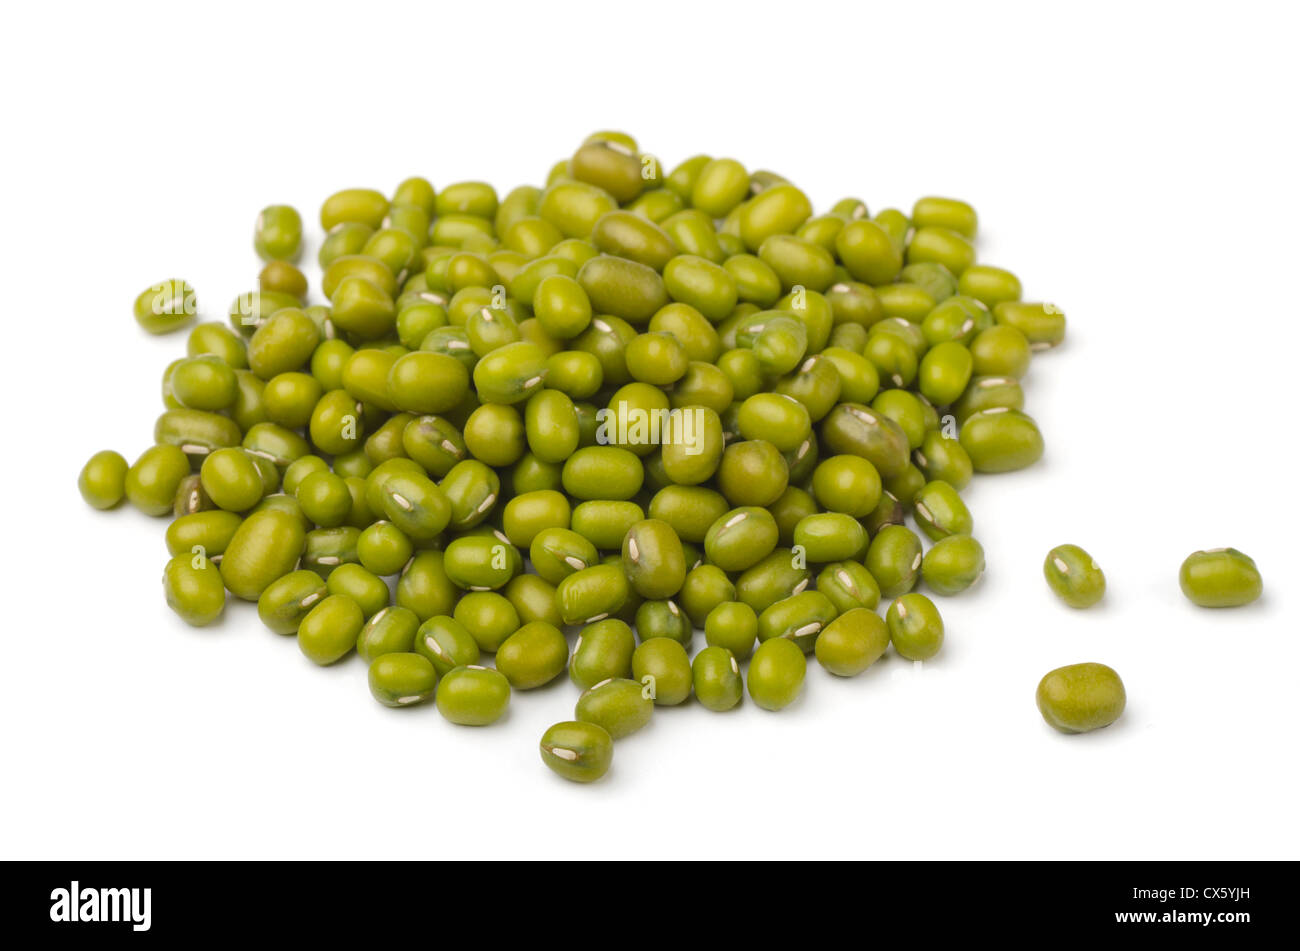 Pile of mung beans isolated on white - Stock Image